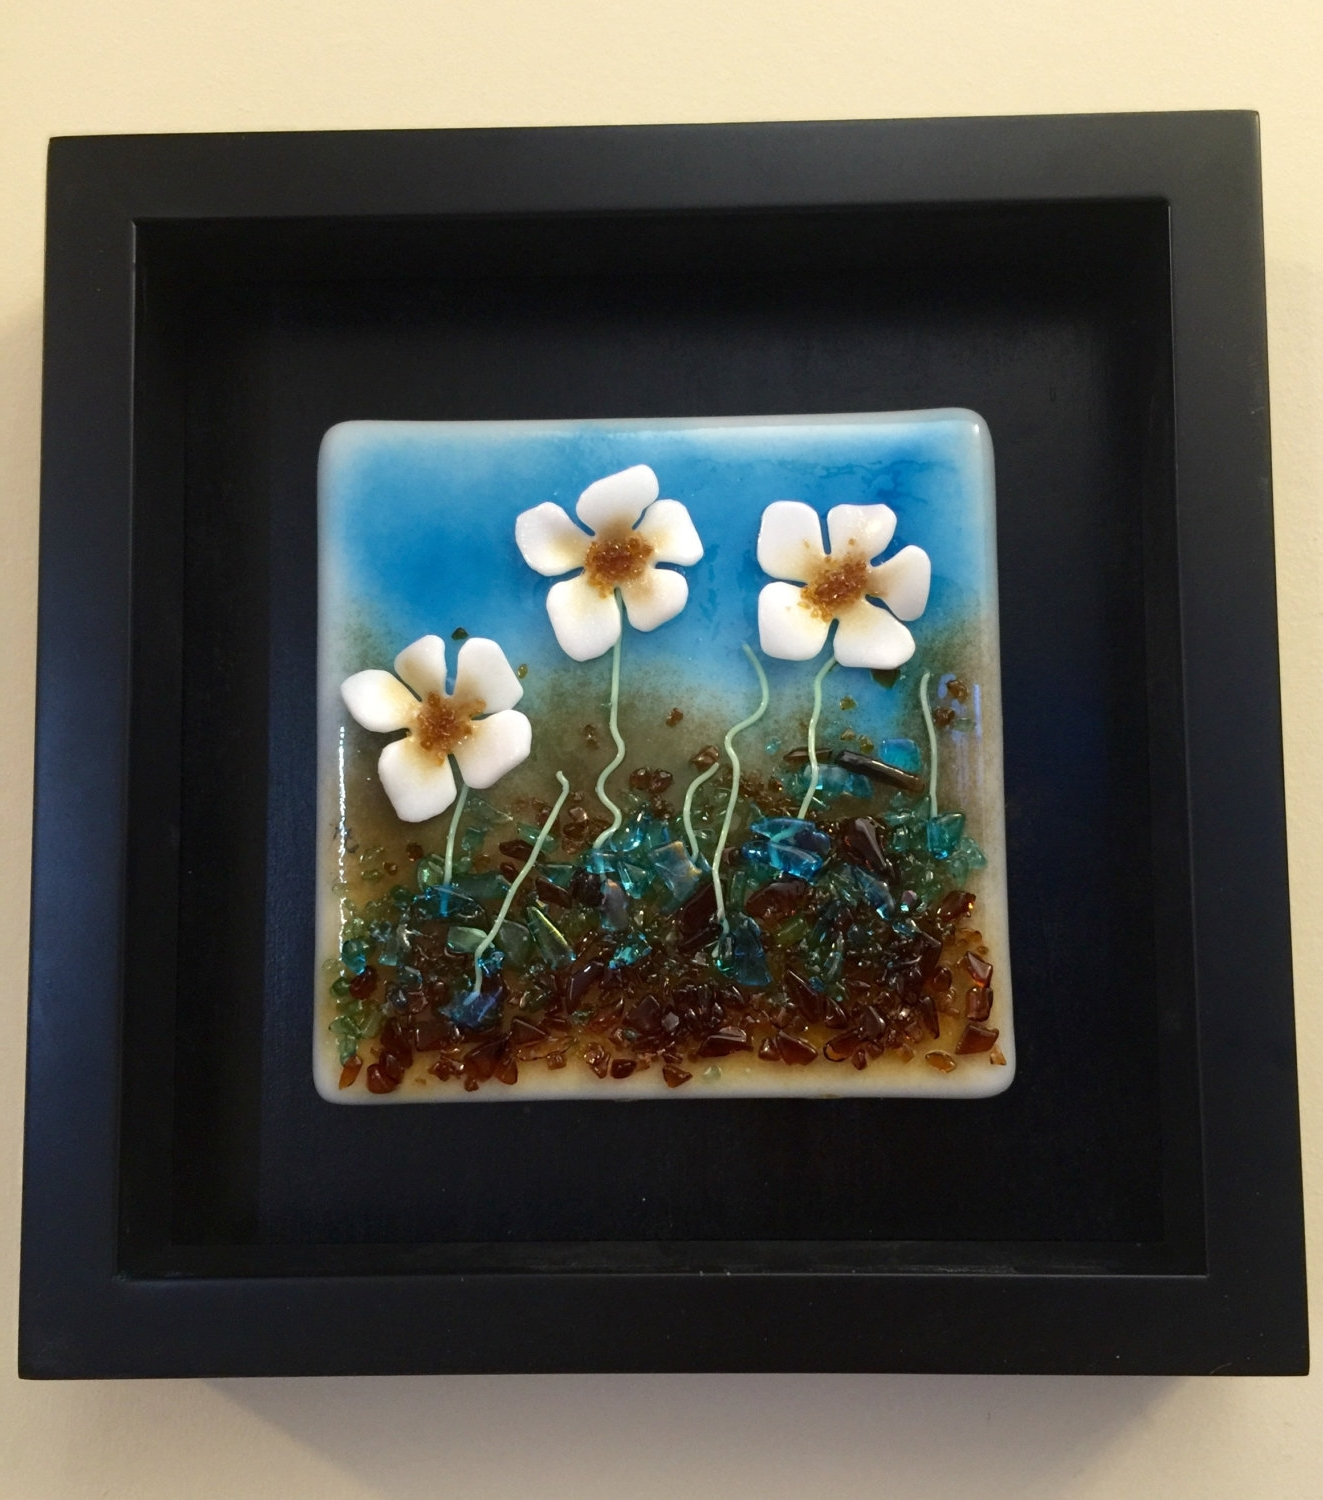 Widely Used Fused Glass Flower Wall Art Throughout Home Decor, Fused Glass, Handmade Fused Glass, Wall Panel, Fused (View 9 of 15)